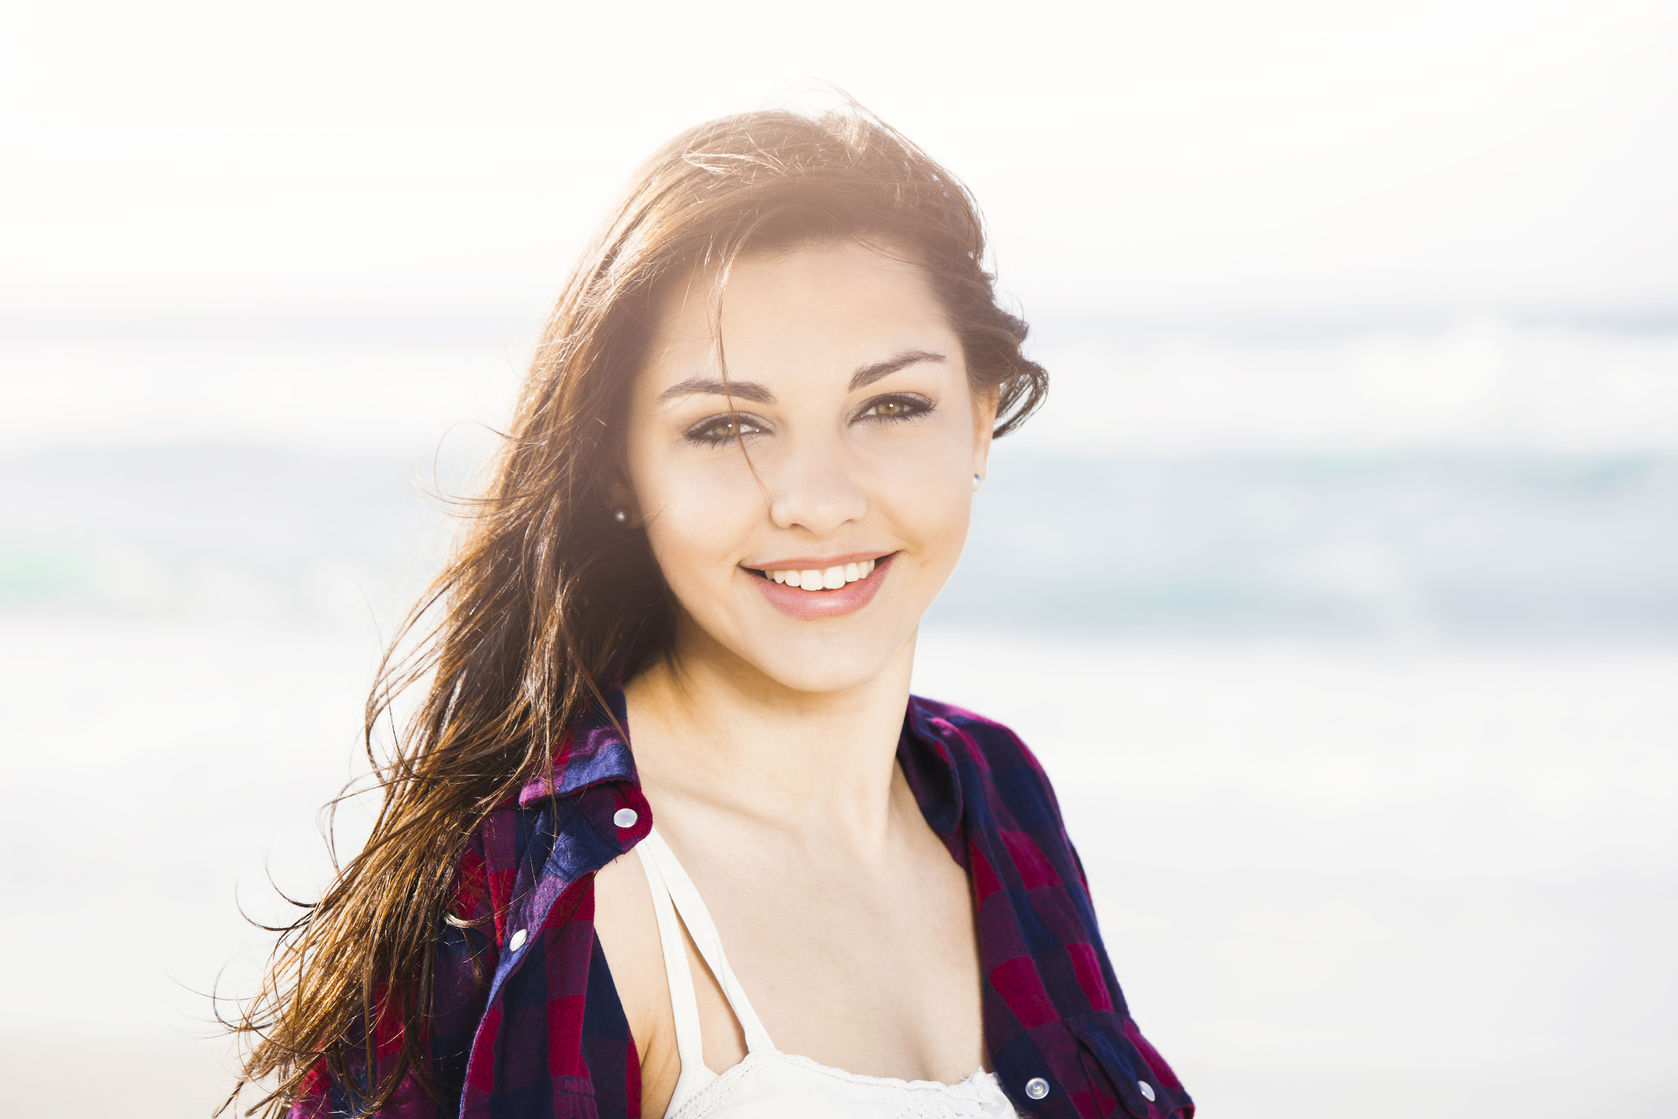 Teenage Rhinoplasty NJ